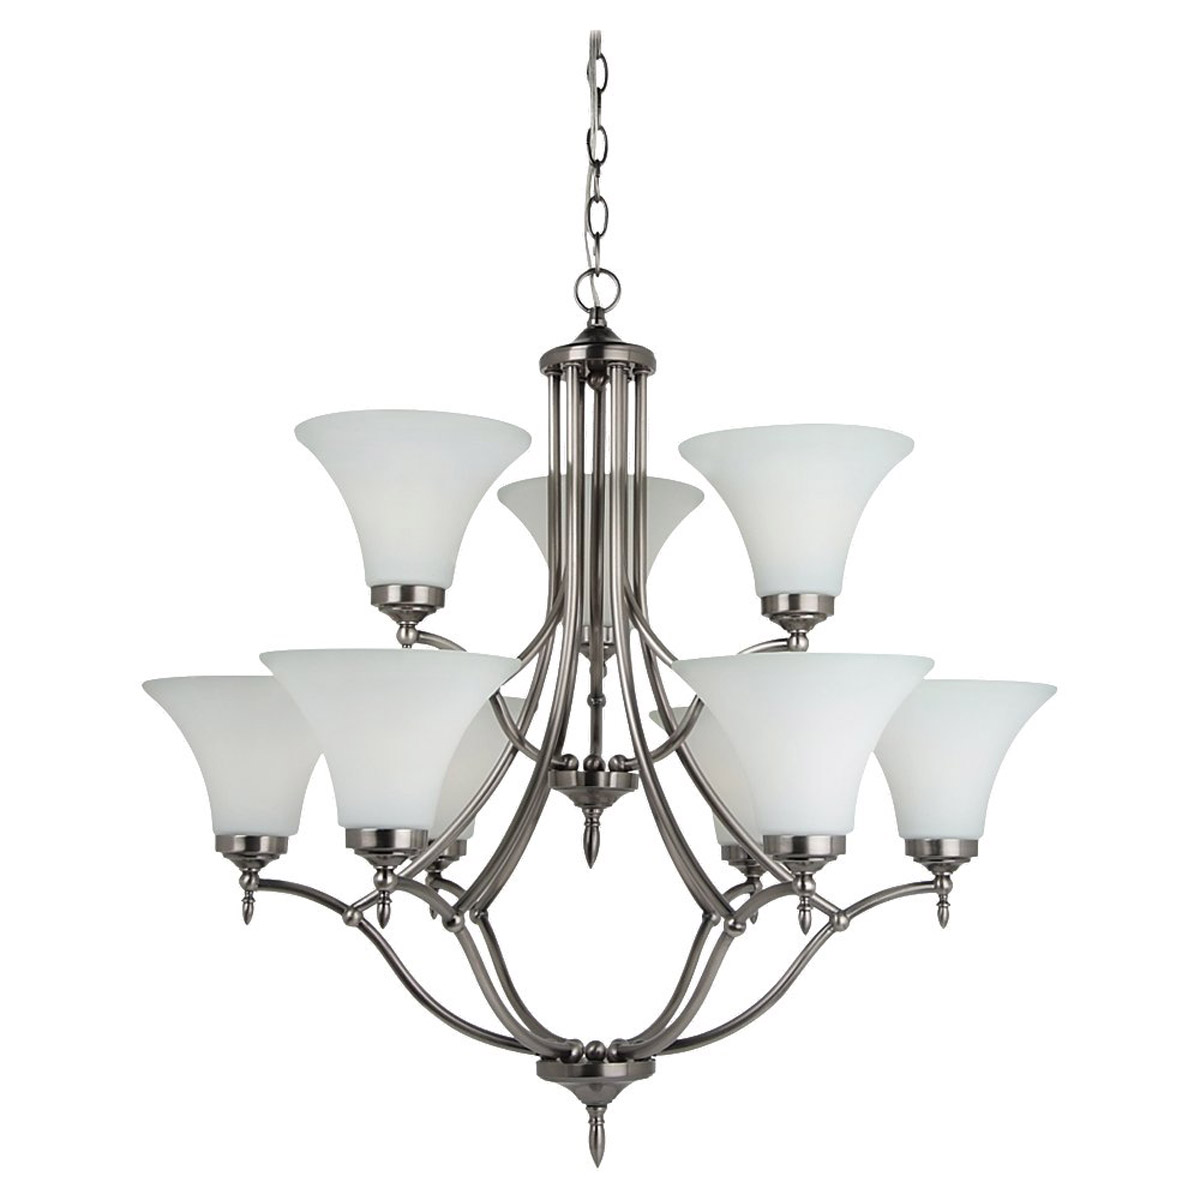 Sea Gull Lighting Montreal 9 Light Chandelier in Antique Brushed Nickel 31182-965